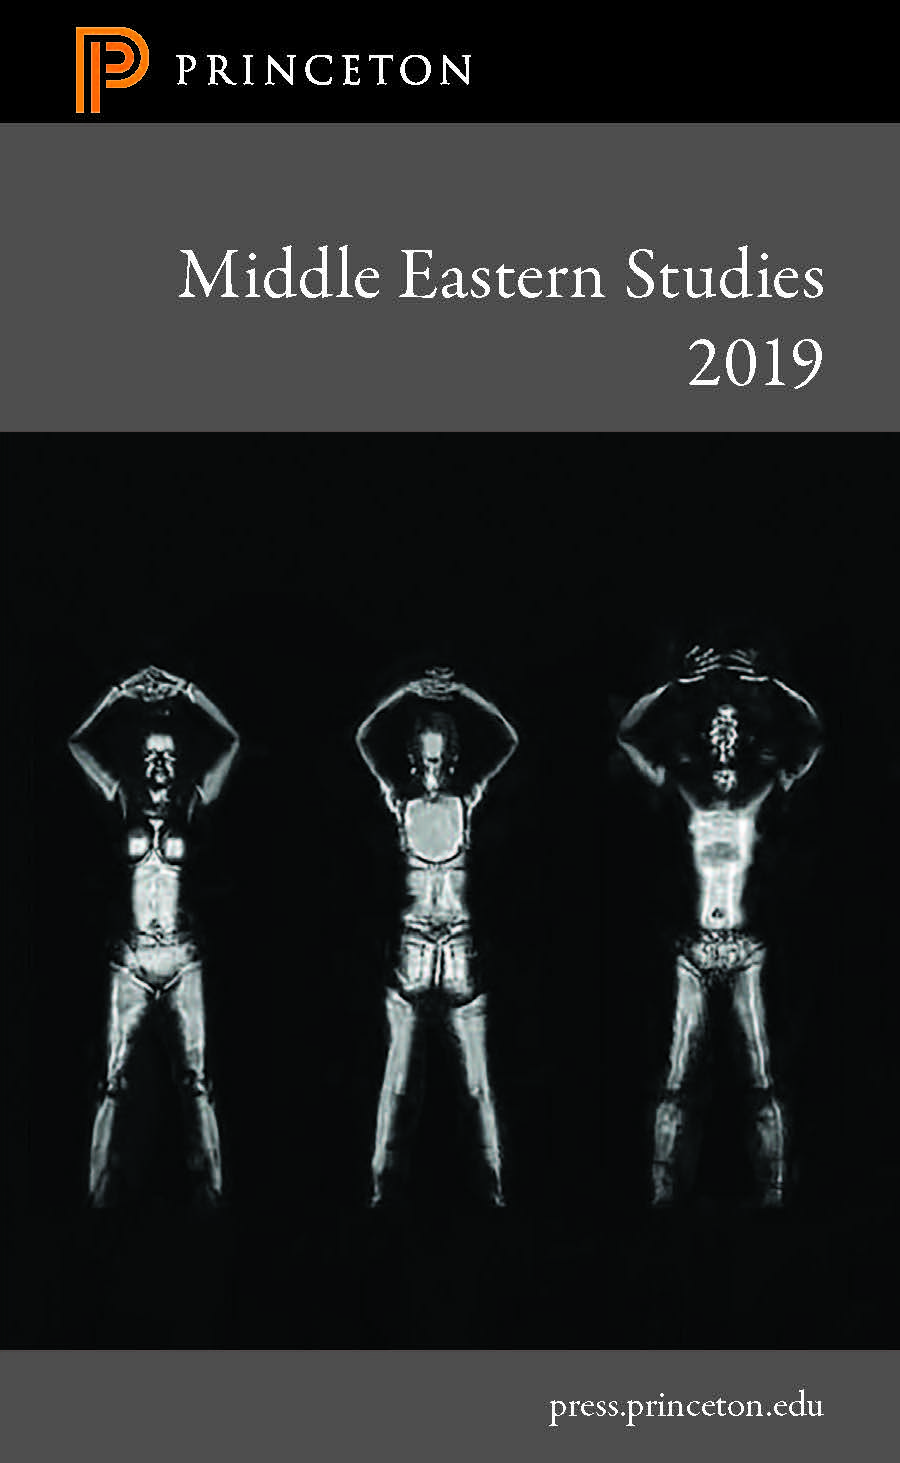 Middle Eastern Studies 2019 Catalog cover